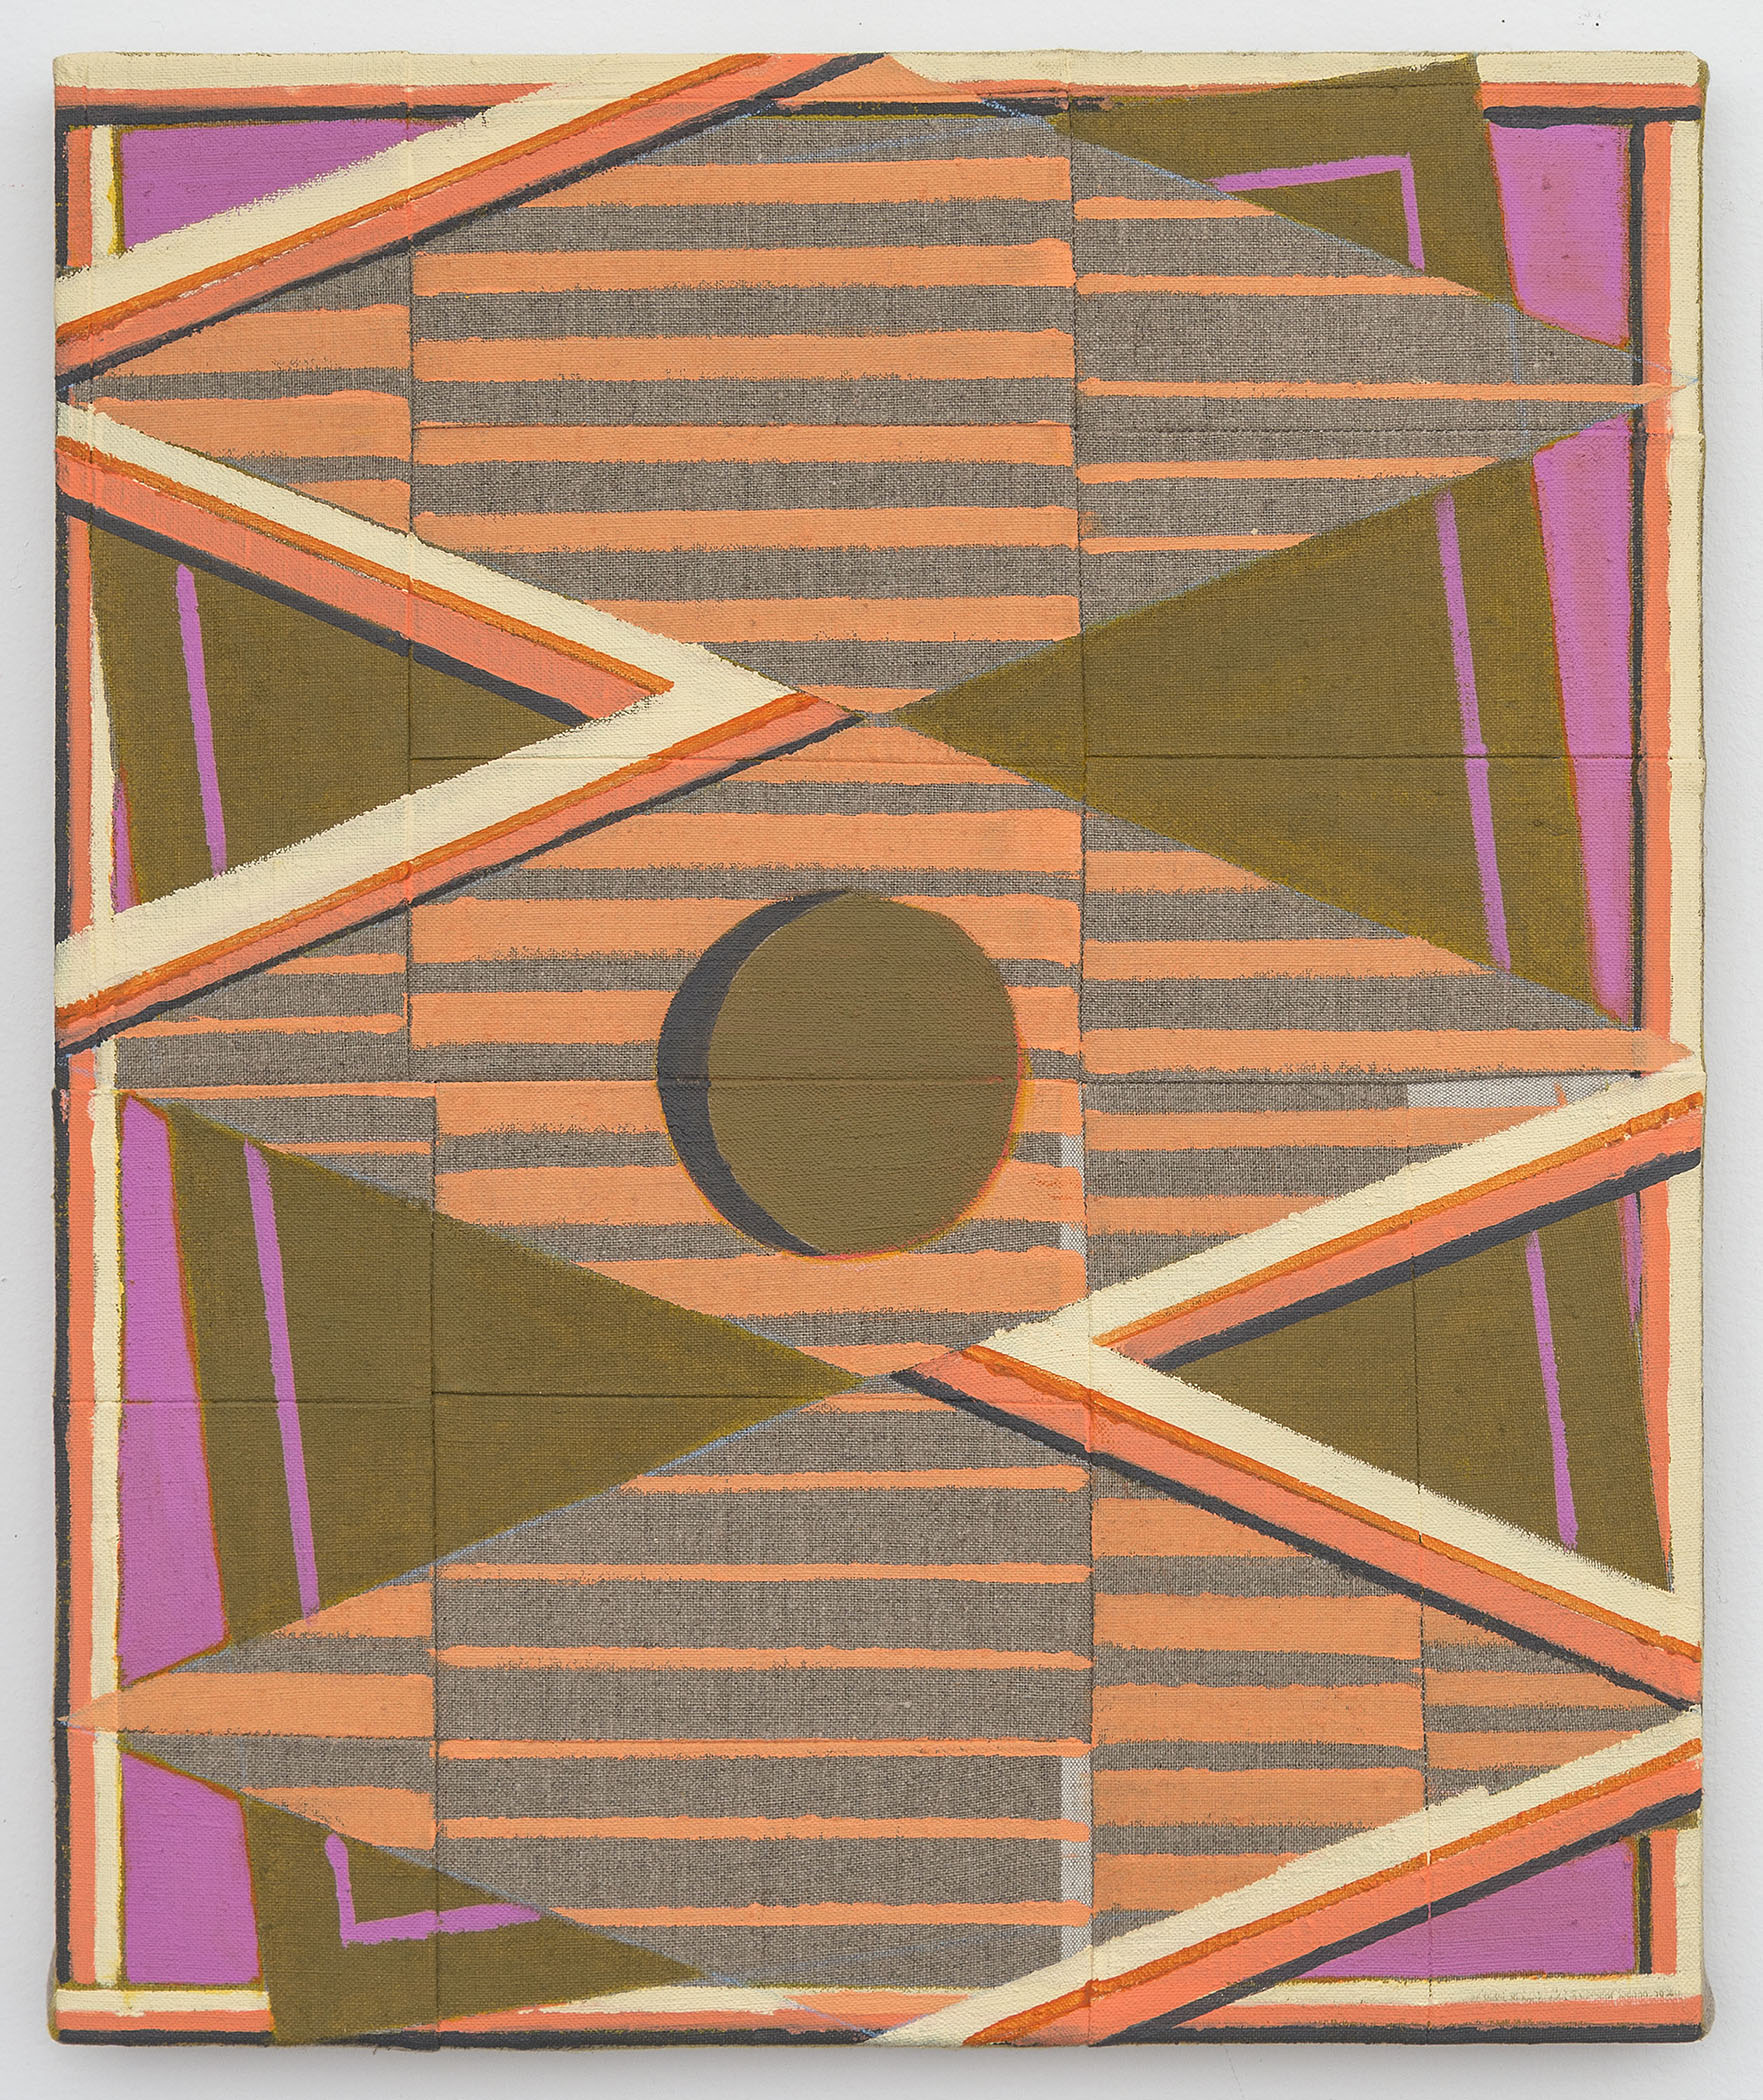 No. 39 (Give and Take), 2017  Acrylic on pieced and sewn linen  18 x 15 inches (45.7 x 38.1 cm)